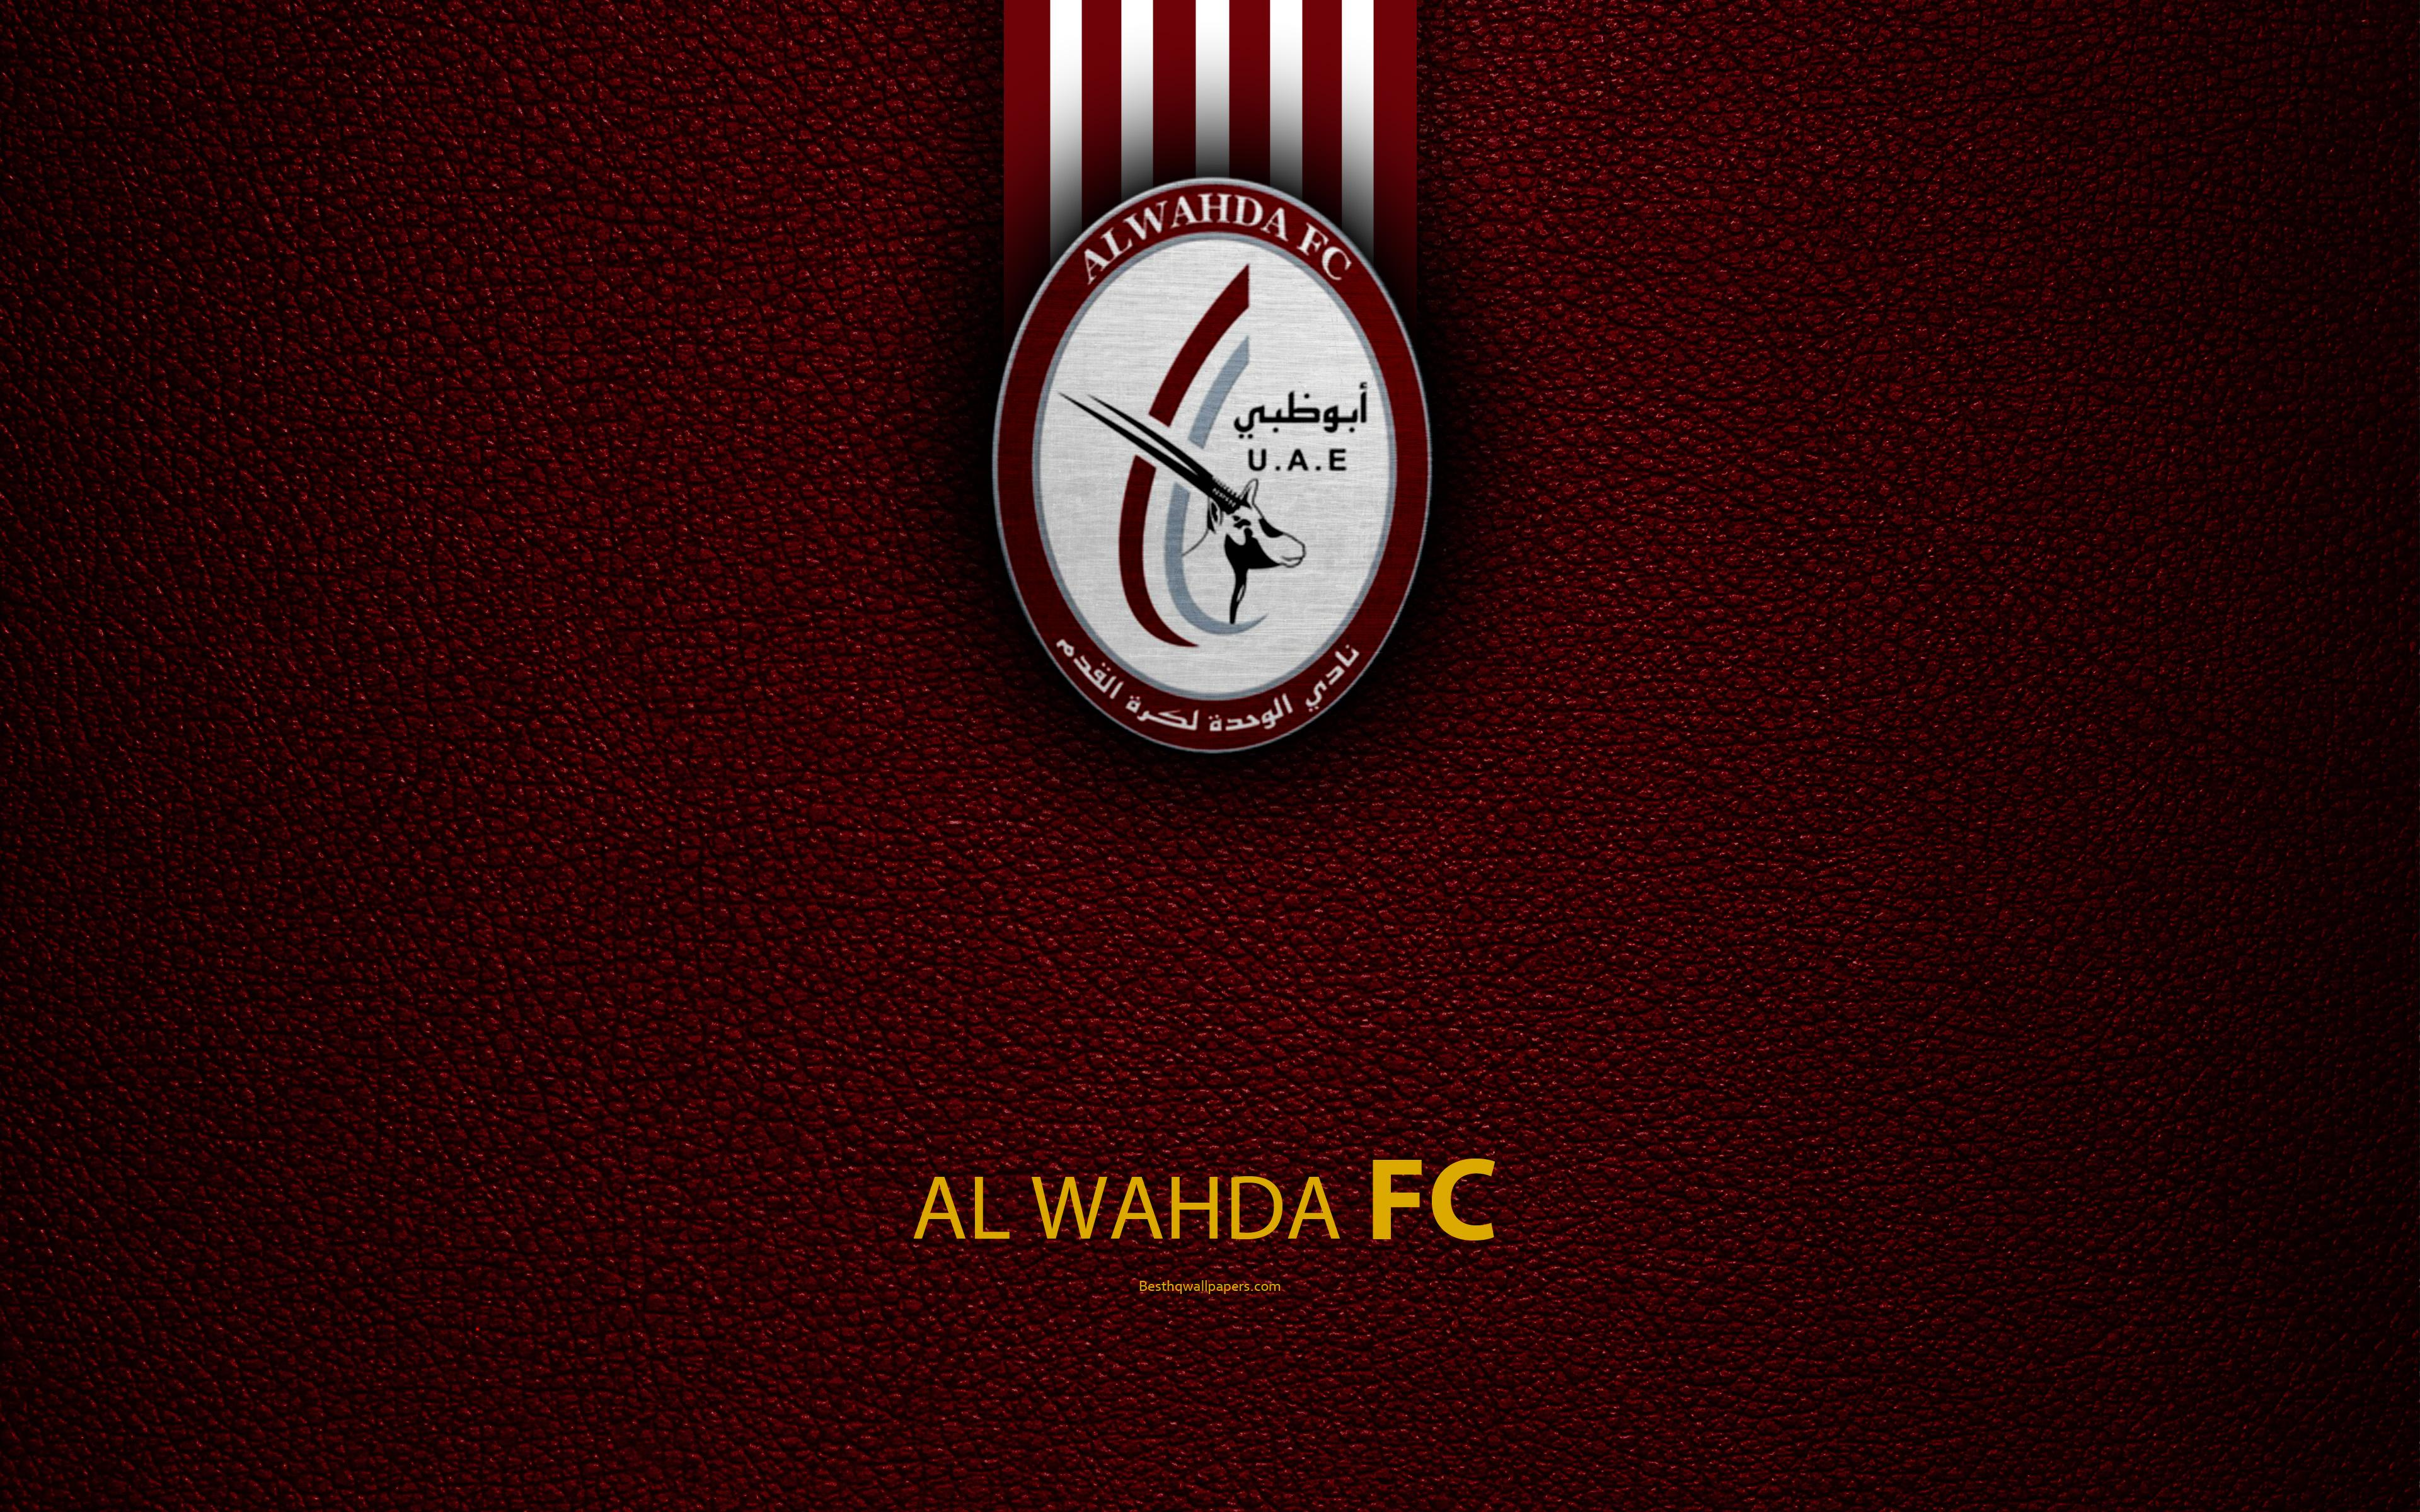 Download wallpapers Al Wahda FC, 4K, logo, football club, leather